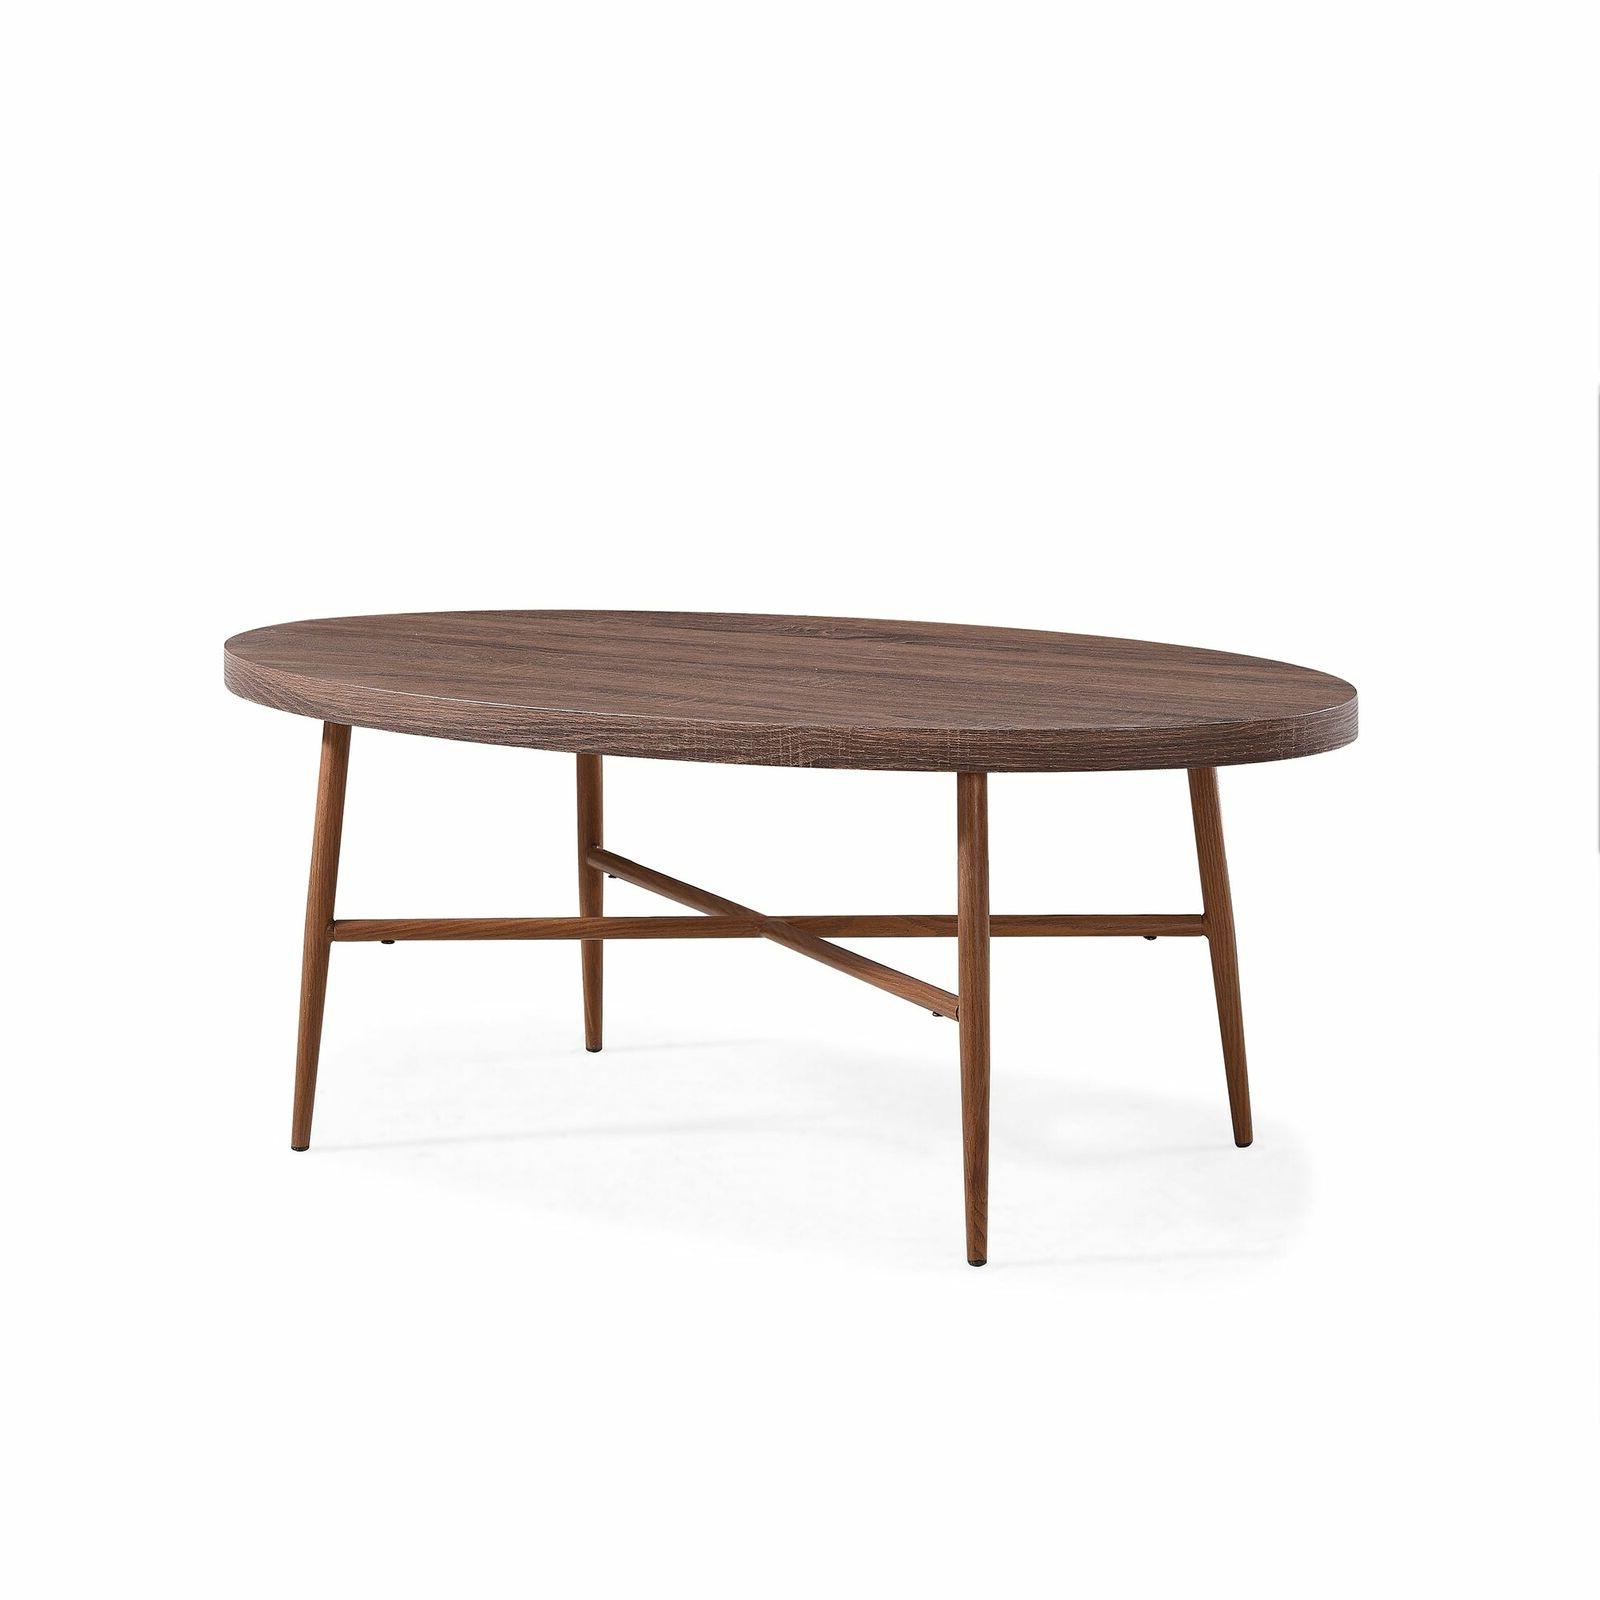 Handy Living Miami Brown Oval Coffee Table With Brown Metal Brown Intended For 2020 Handy Living Miami White Oval Coffee Tables With Brown Metal Legs (View 14 of 20)